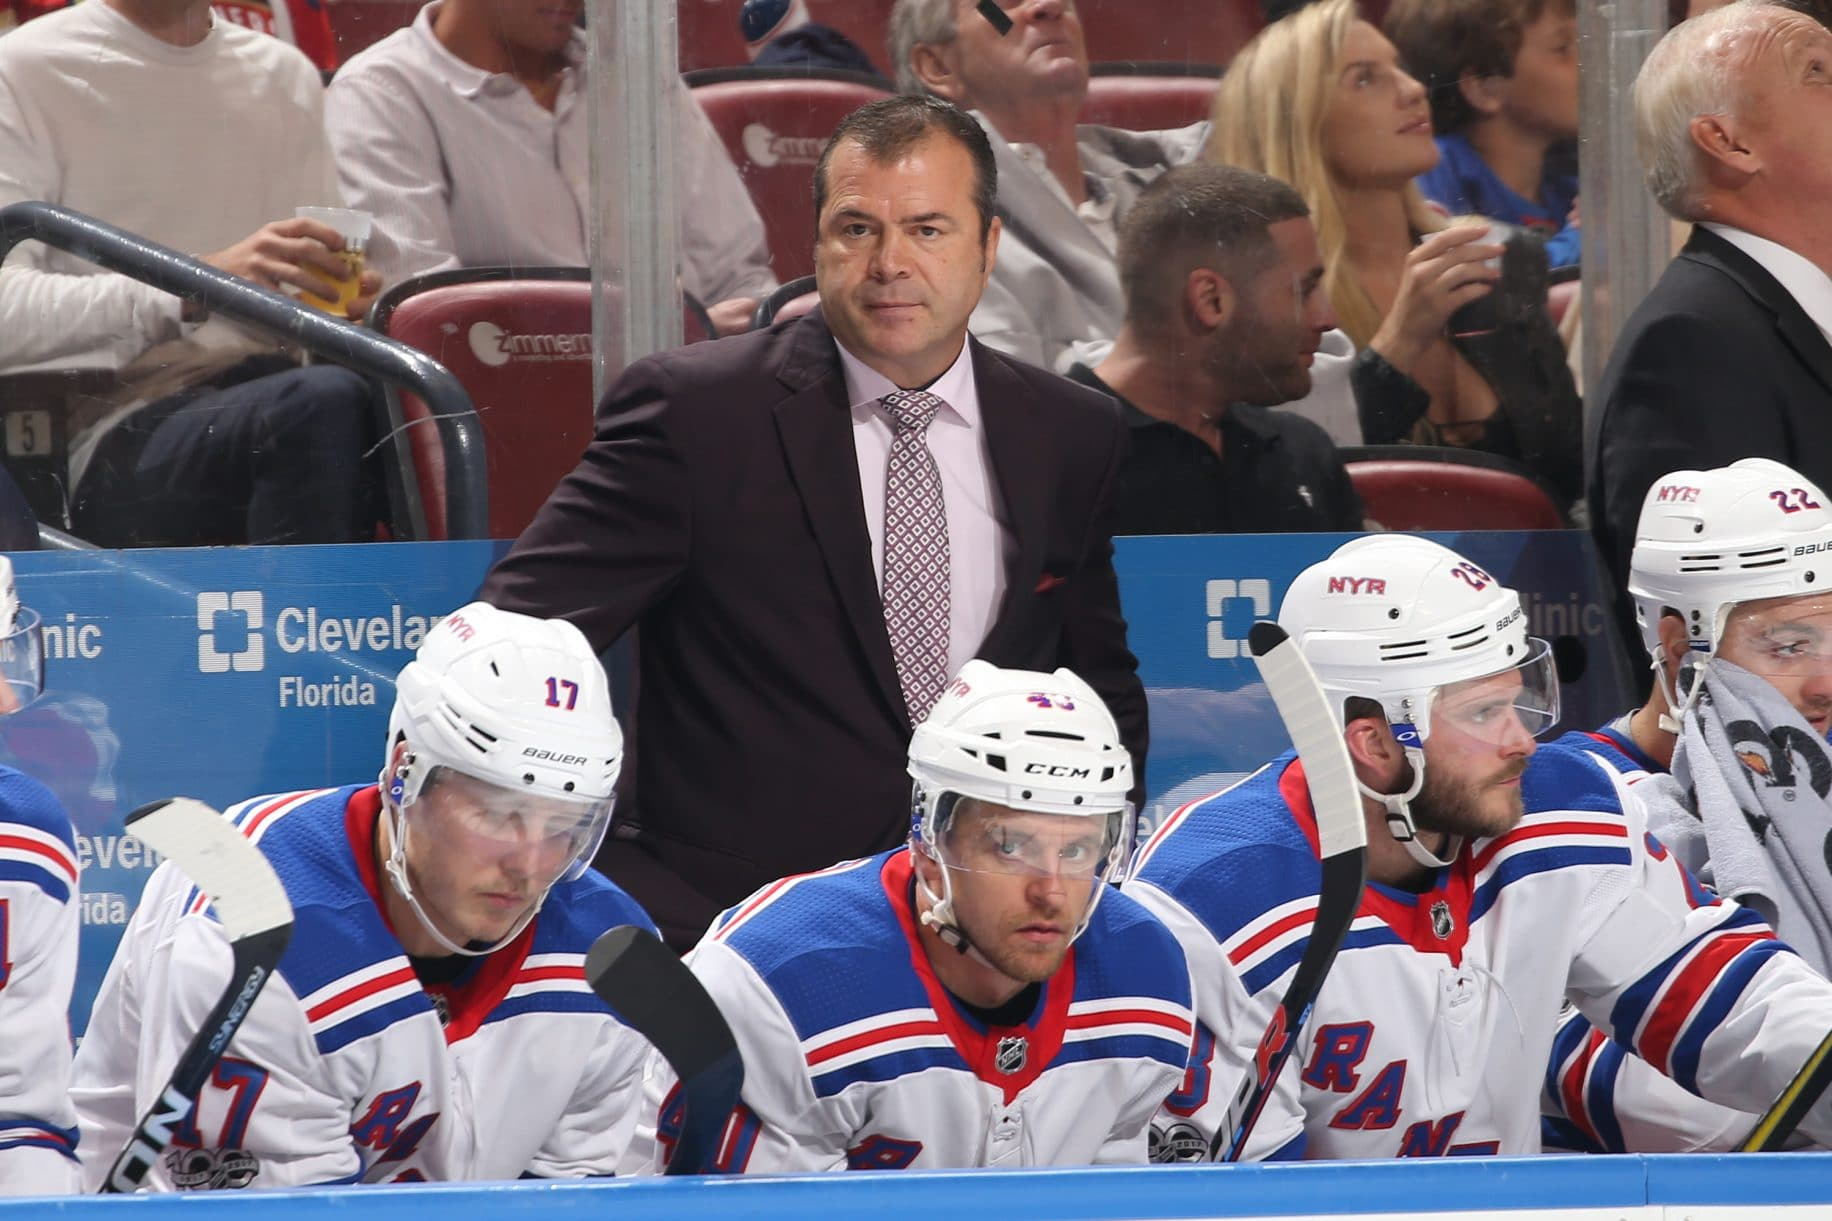 New York Rangers: Alain Vigneault's lineup 'tweak' pays dividends